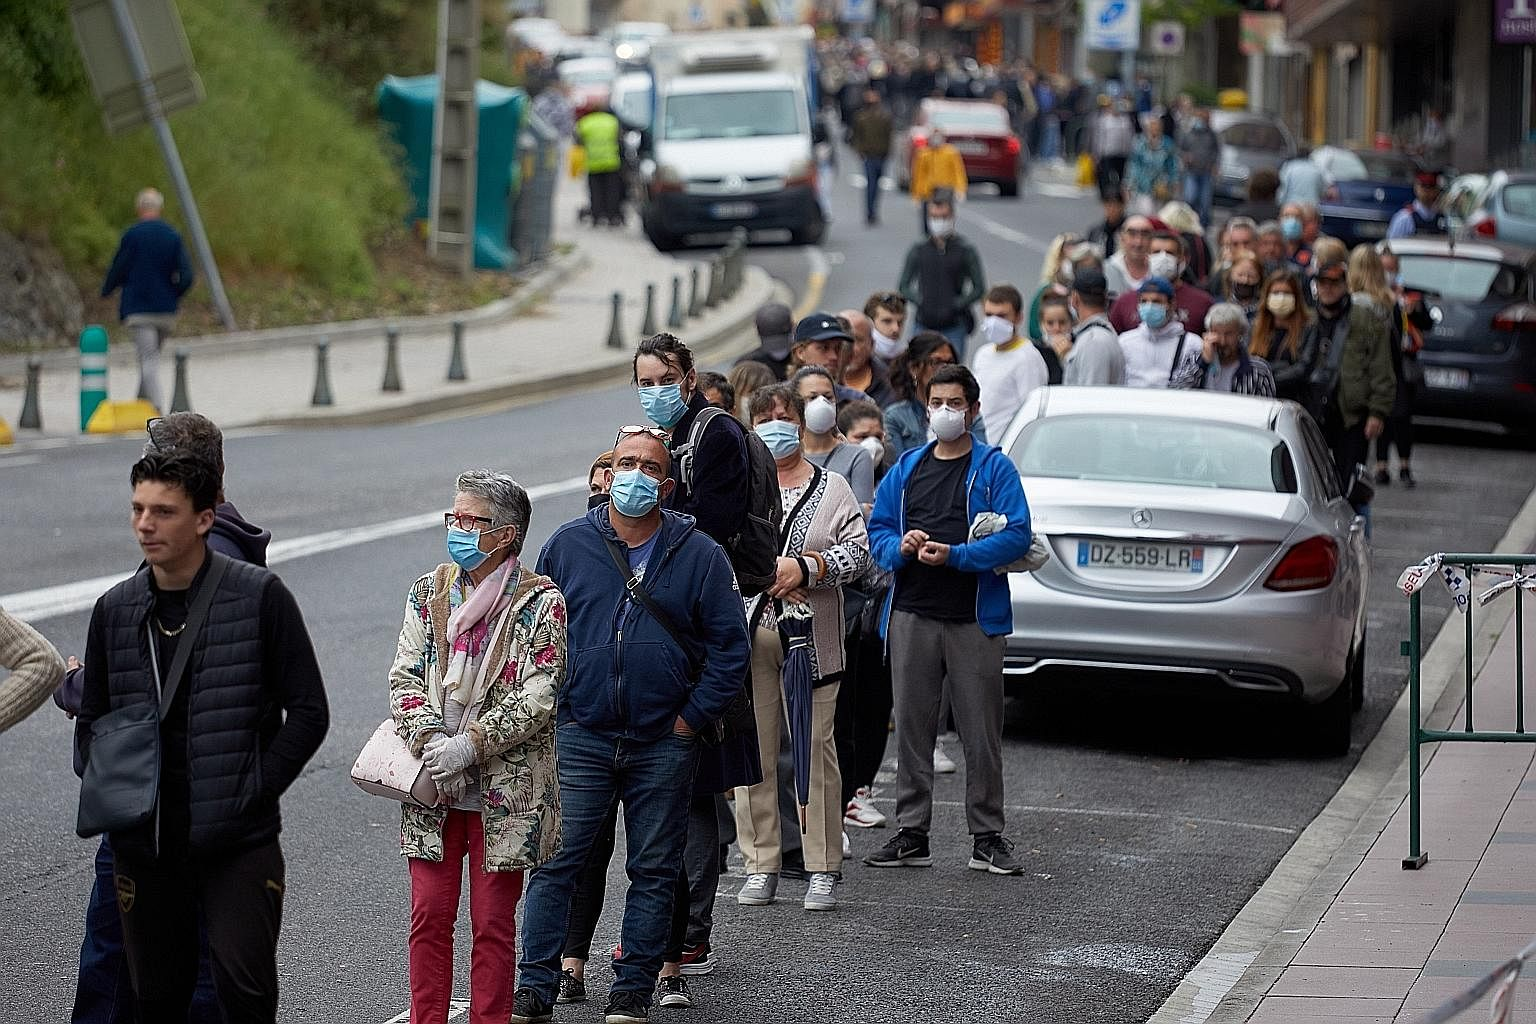 A long queue outside a shop in the Spanish border town of El Pertus last Tuesday. As restrictions eased, people living on the French-Spanish border have been crossing over to Spain to buy items such as cigarettes and alcohol, which a